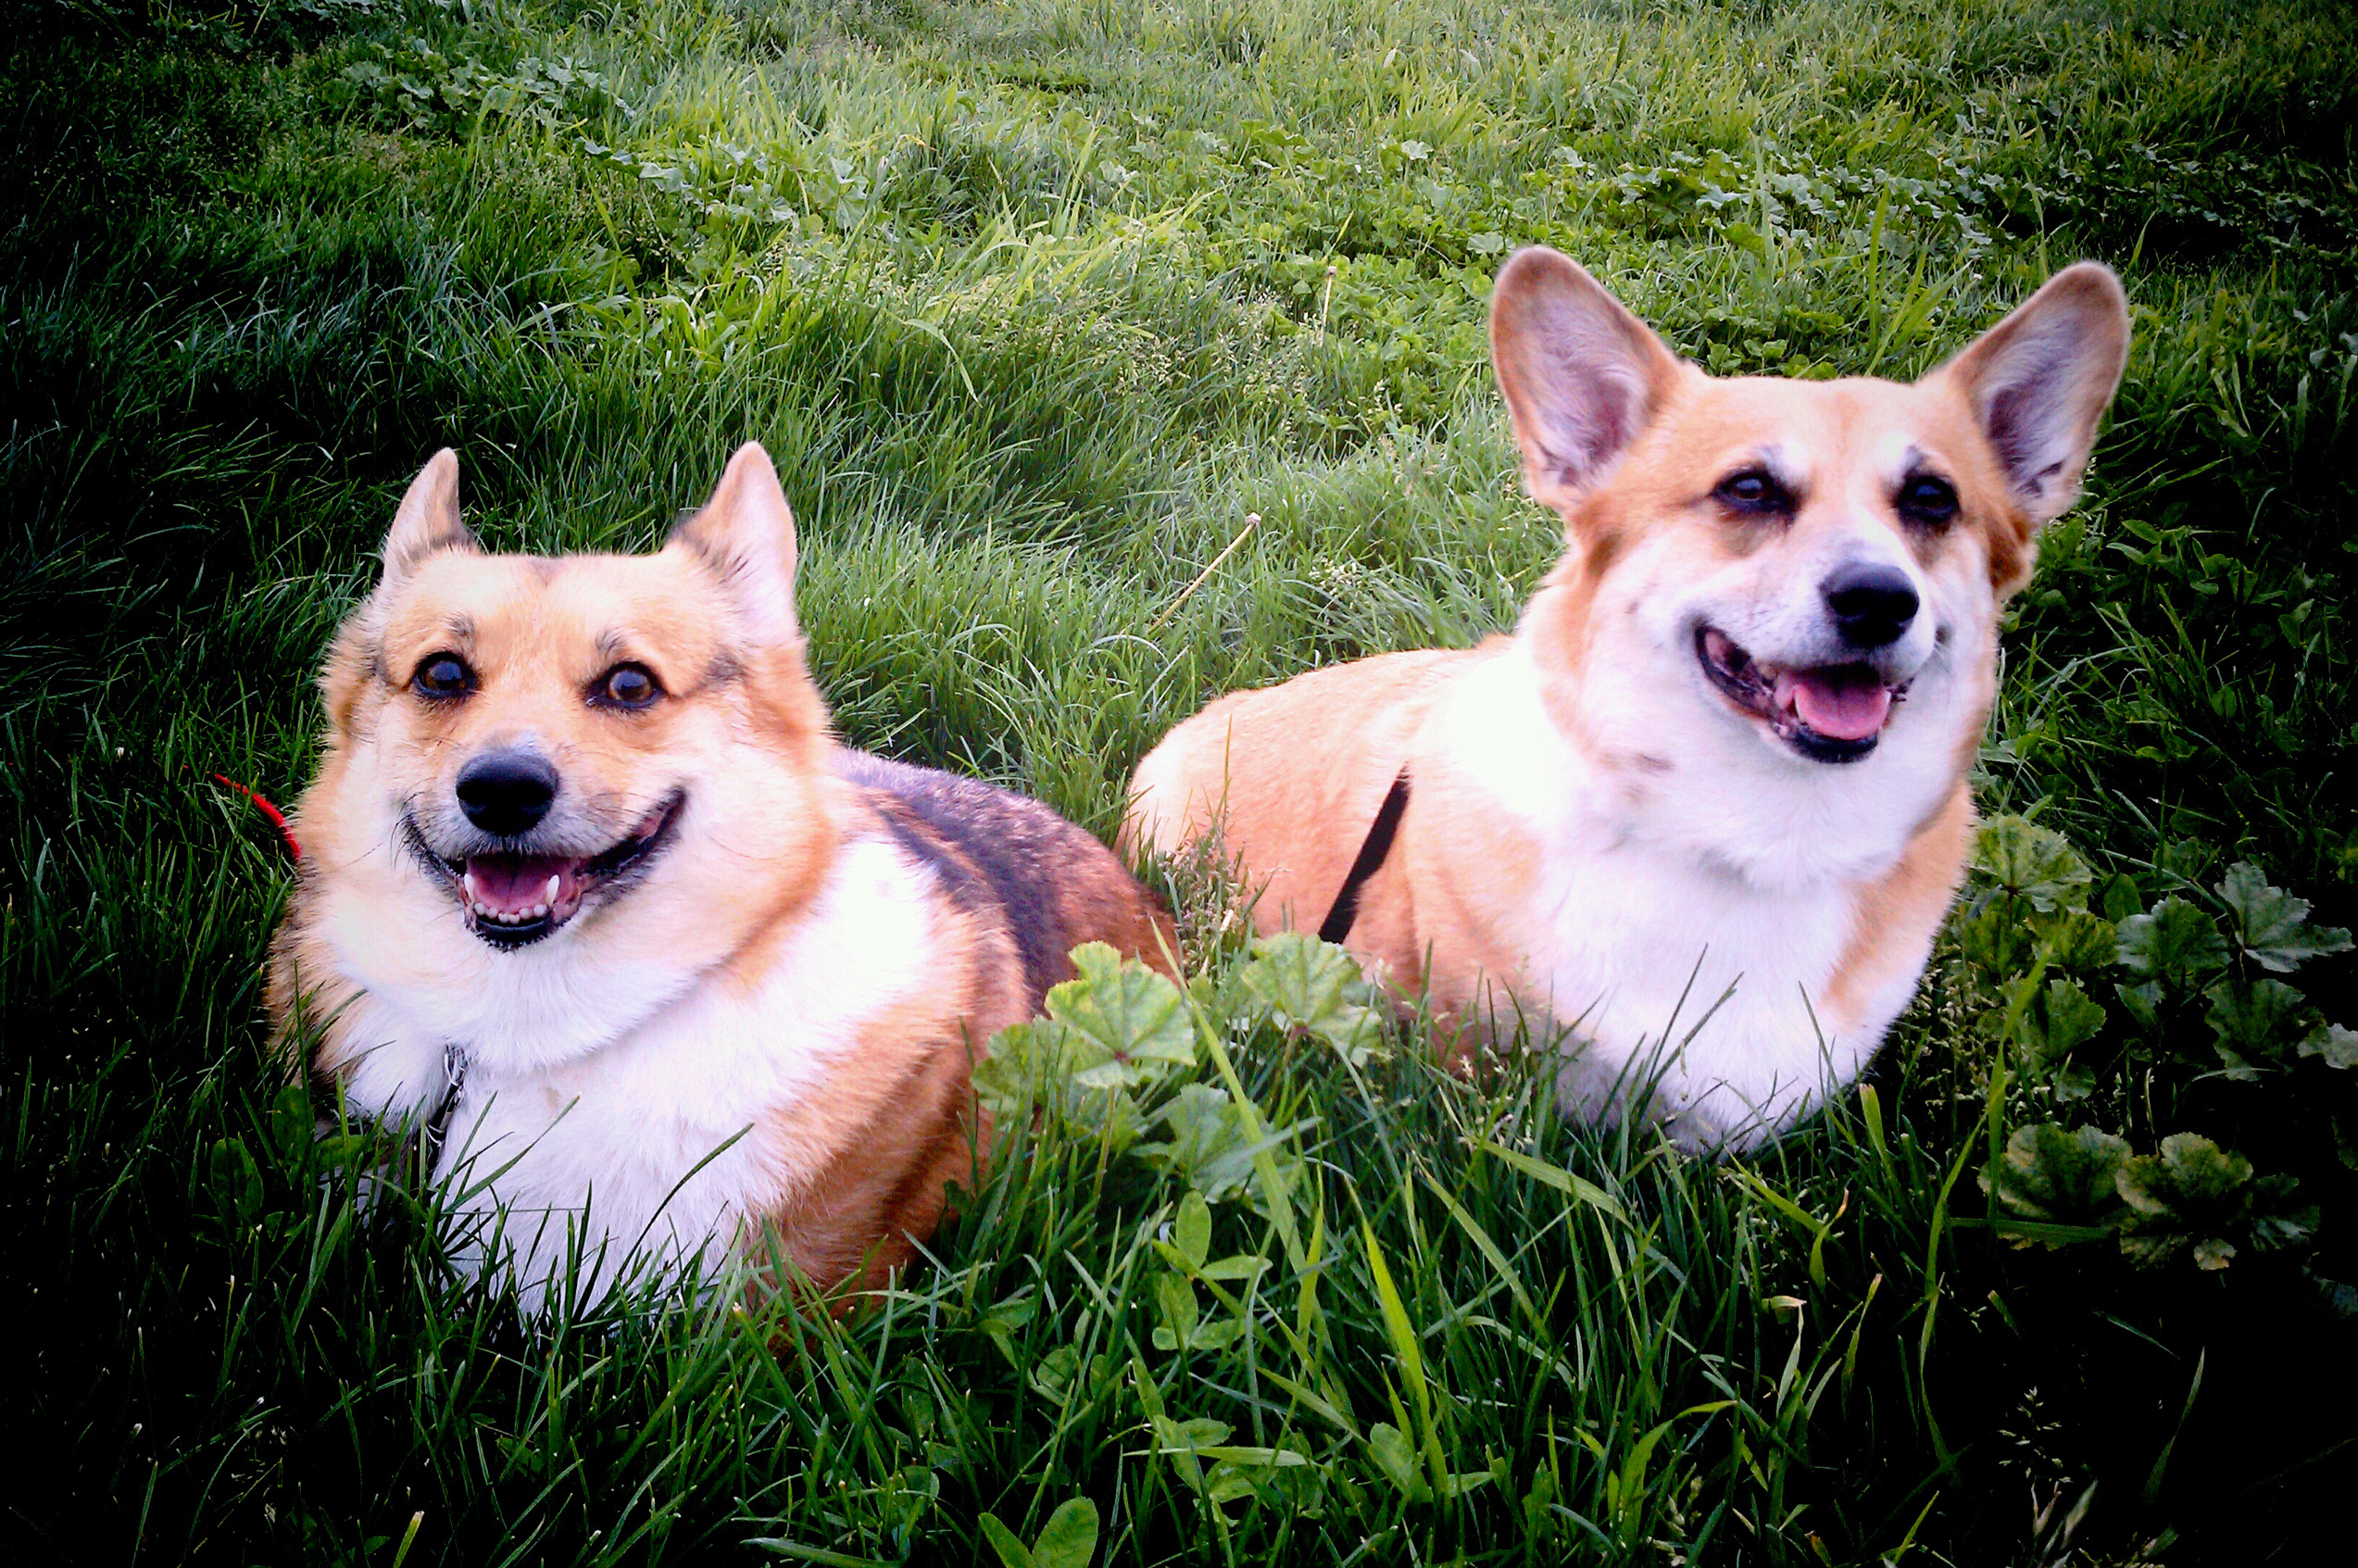 Wallace and Sadie, my Pembroke Welsh Corgis